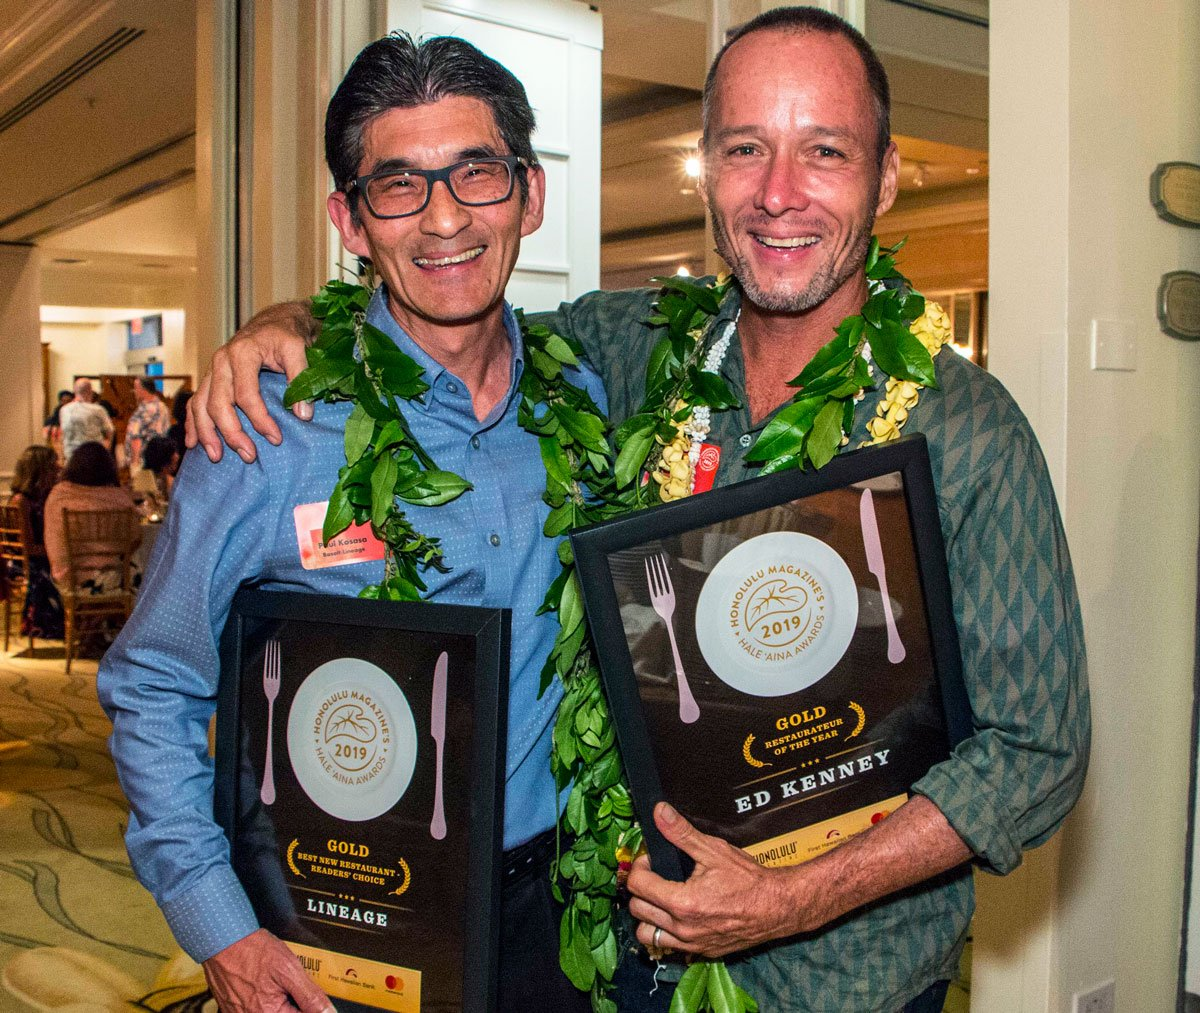 Hale Aina Awards winners Ed Kenney Lineage Maui